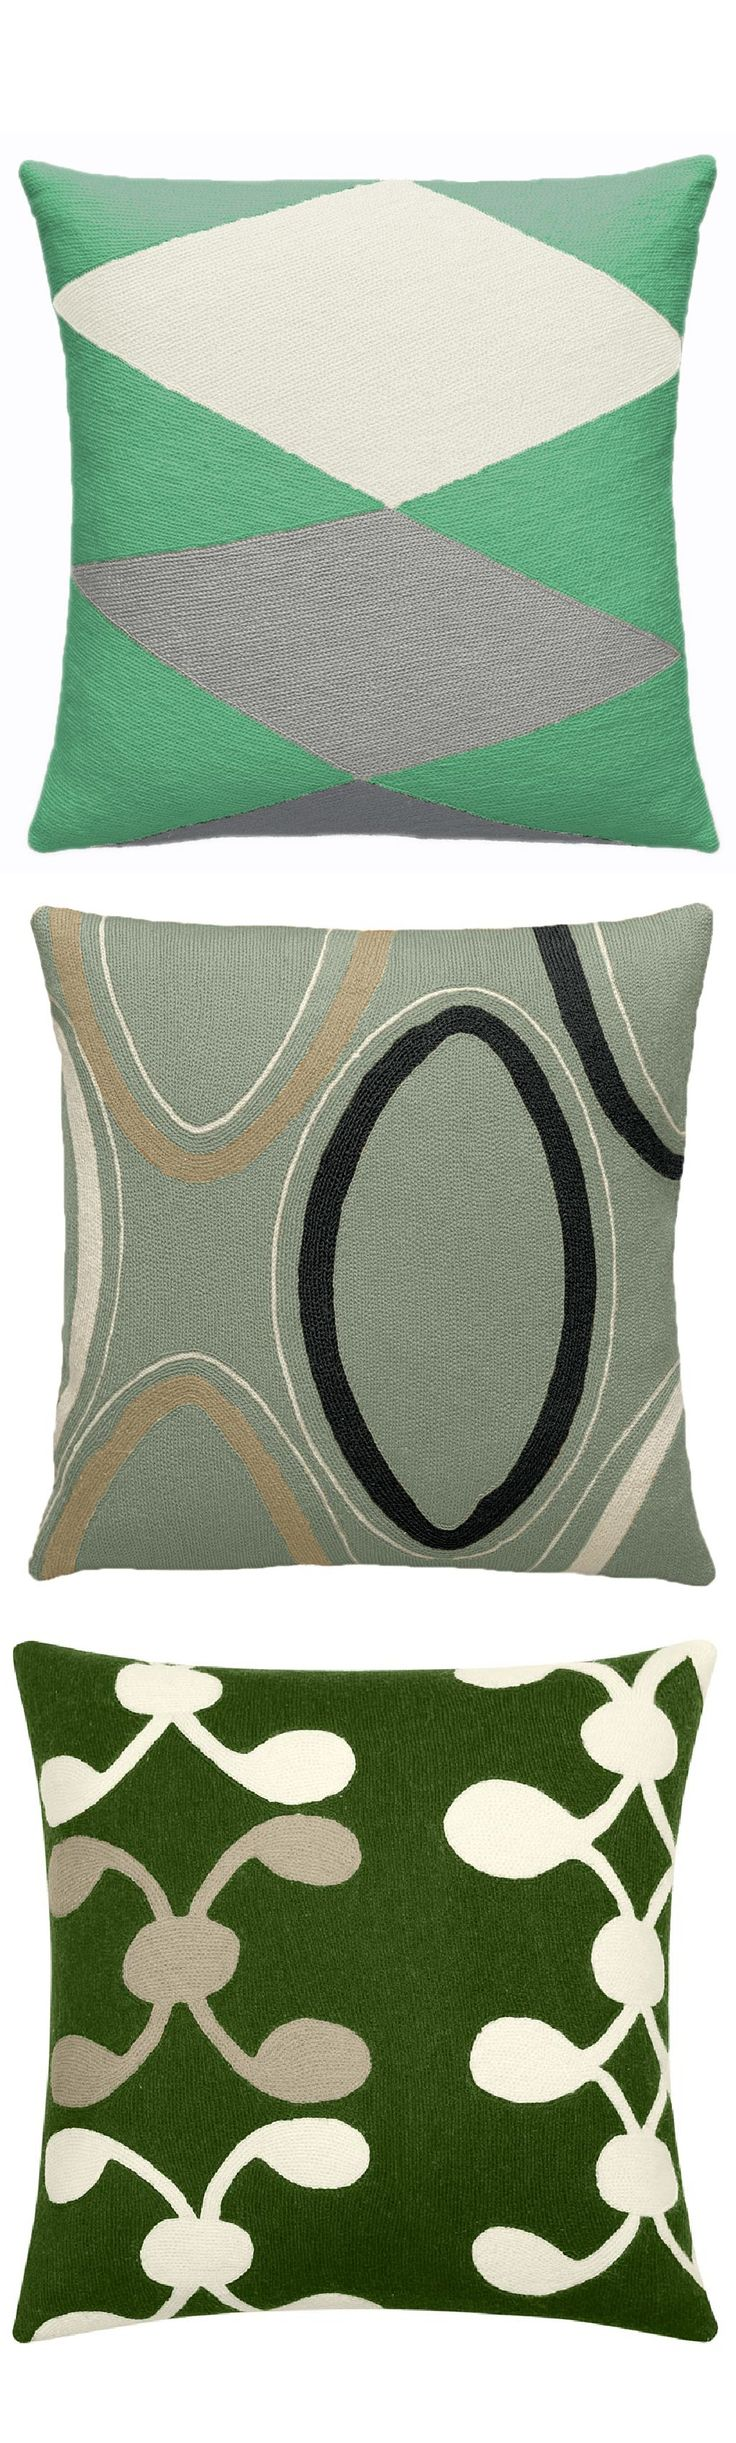 17 Best images about Green Pillows on Pinterest Green pillow covers, Cushions and Pinterest pin